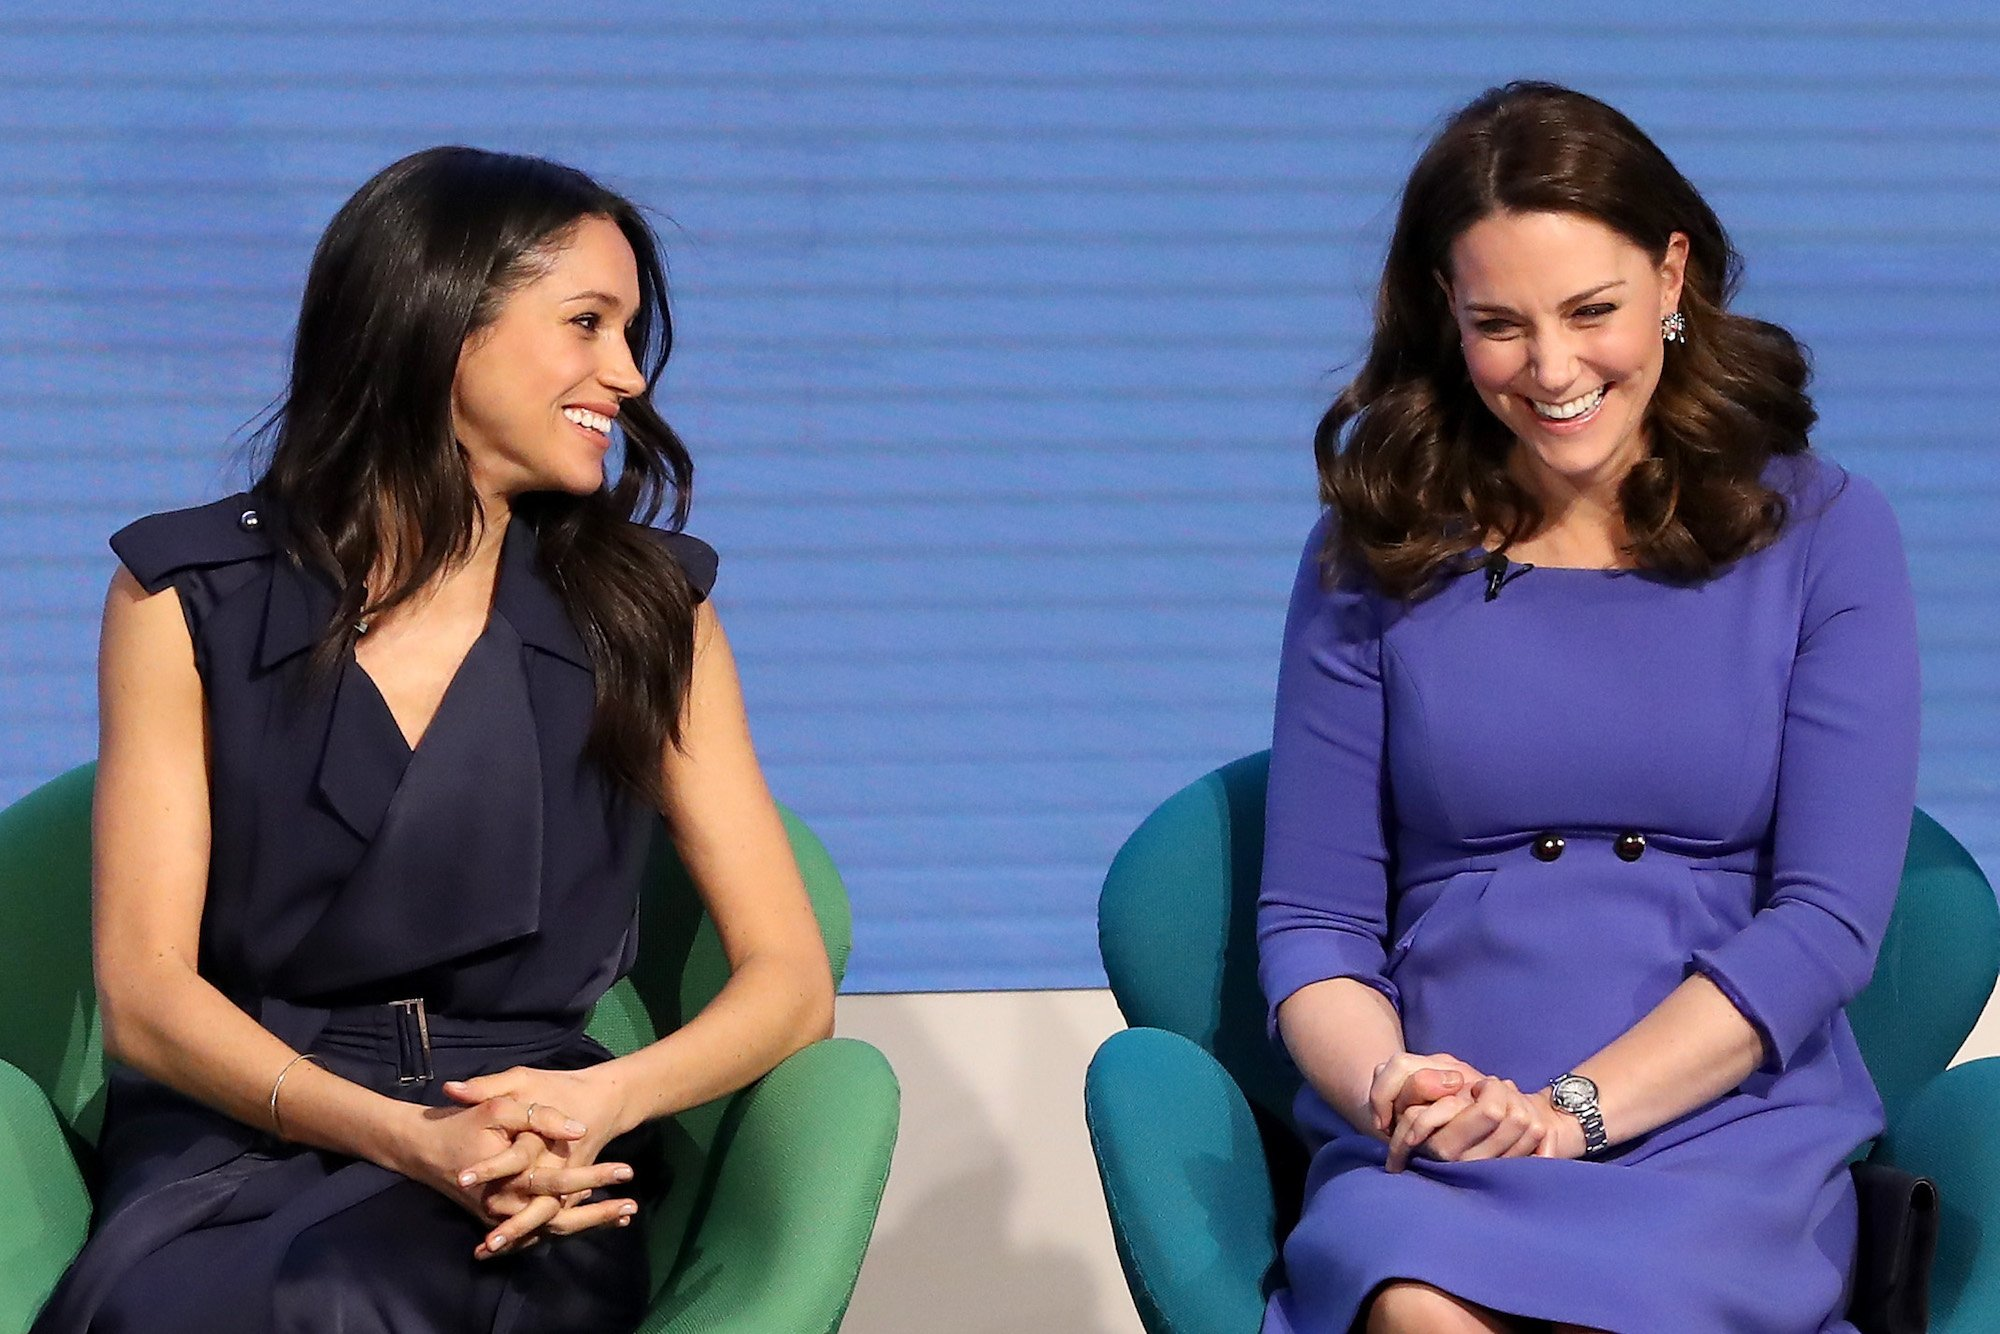 James also pointed out that whenever Middleton spoke, Markle would make a concerted effort to turn to listen to her Photo (C) GETTY